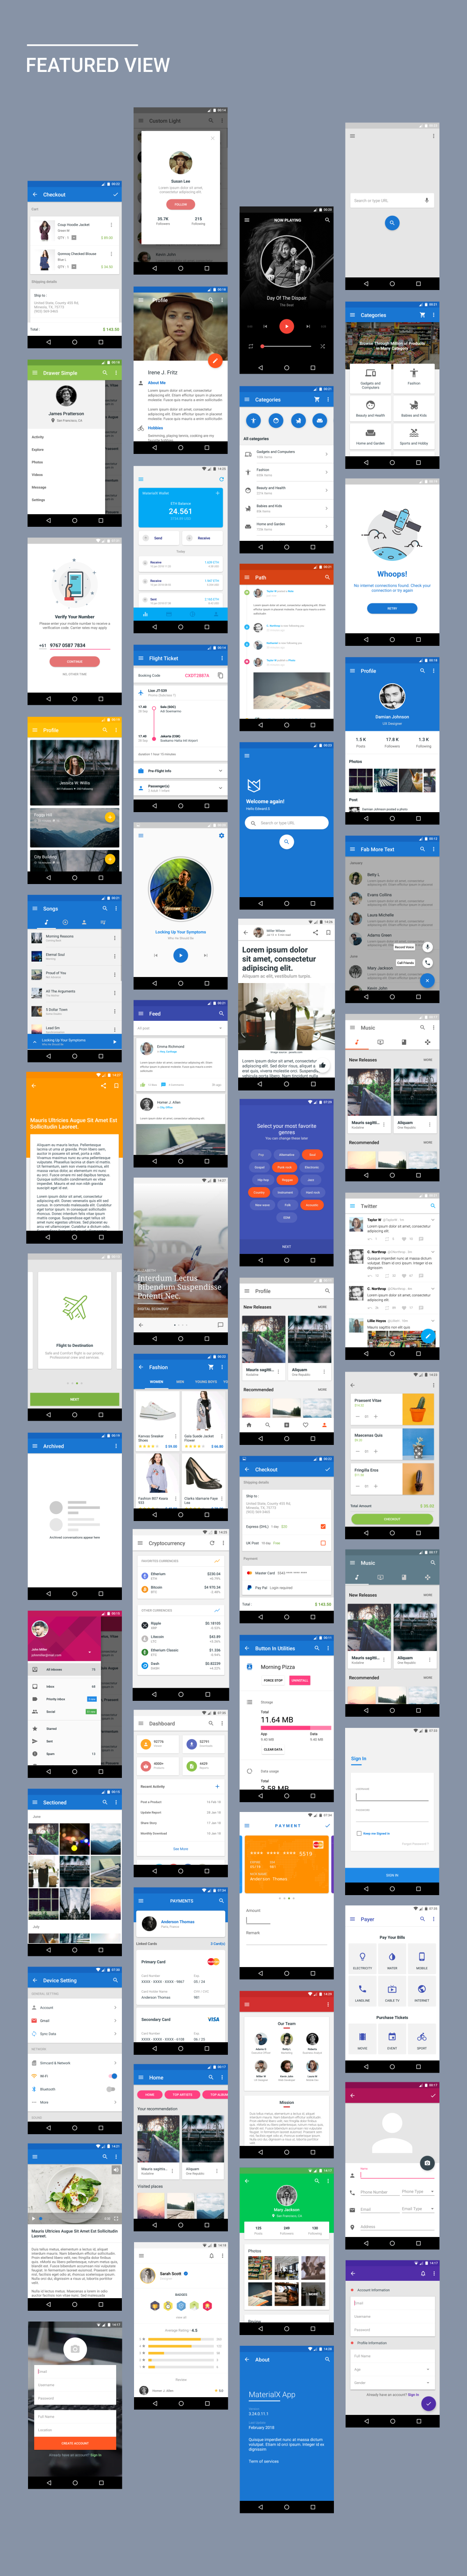 MaterialX - Android Material Design UI Components 2.2